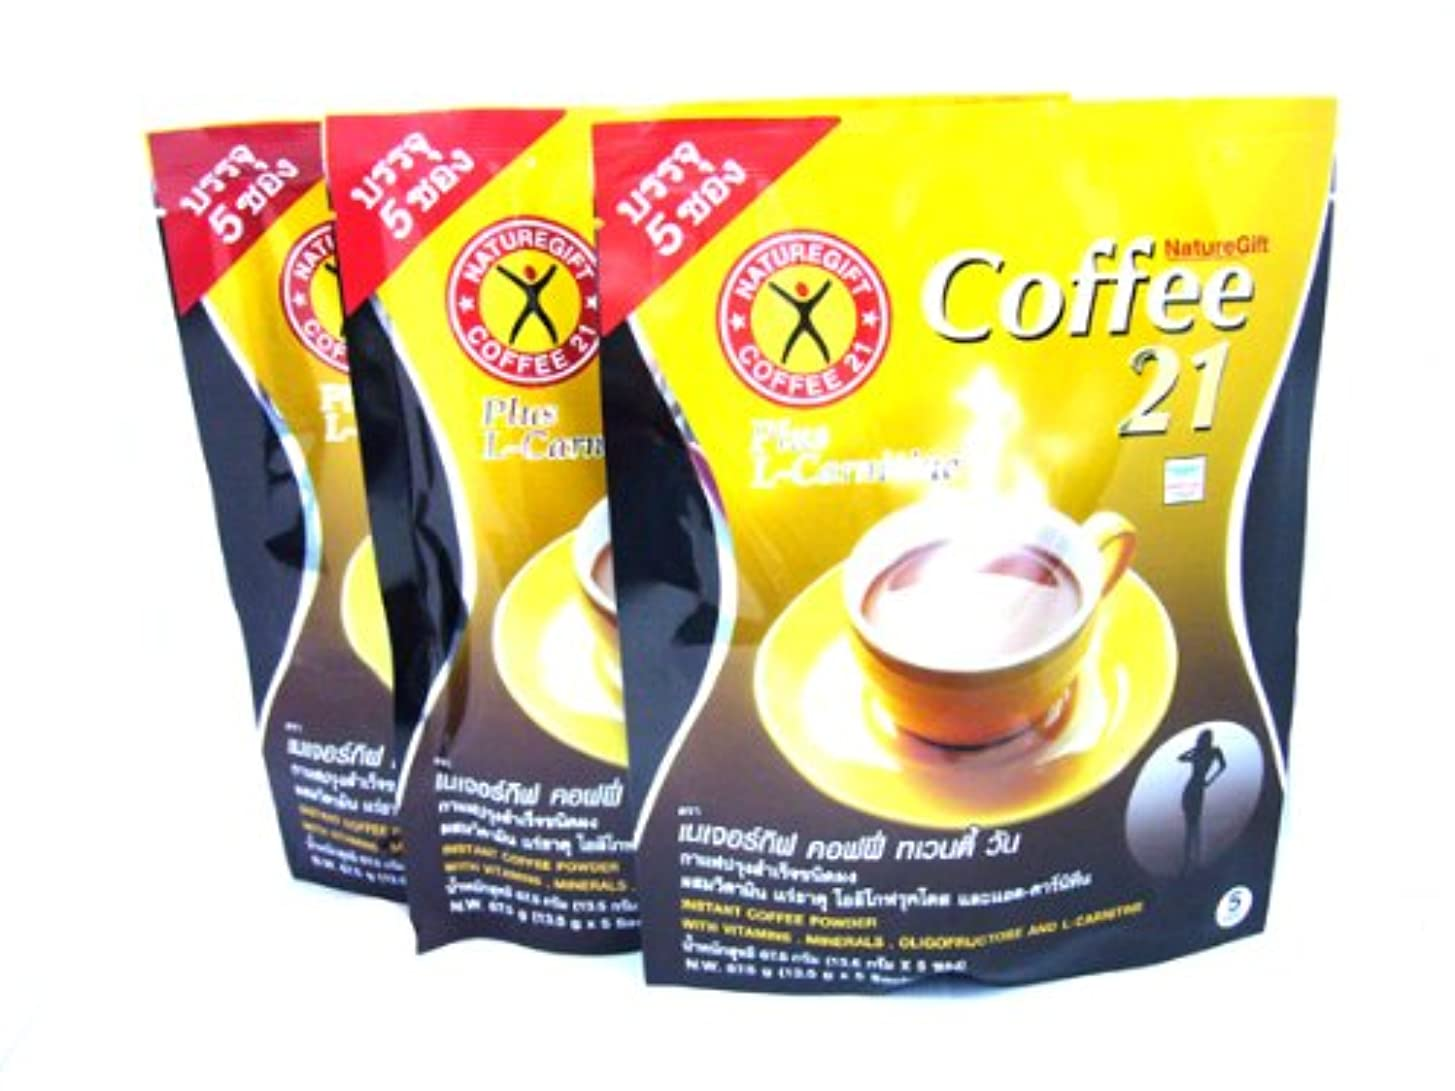 誰プロフィールシーン3x Naturegift Instant Coffee Mix 21 Plus L-carnitine Slimming Weight Loss Diet Made in Thailand by alanroger